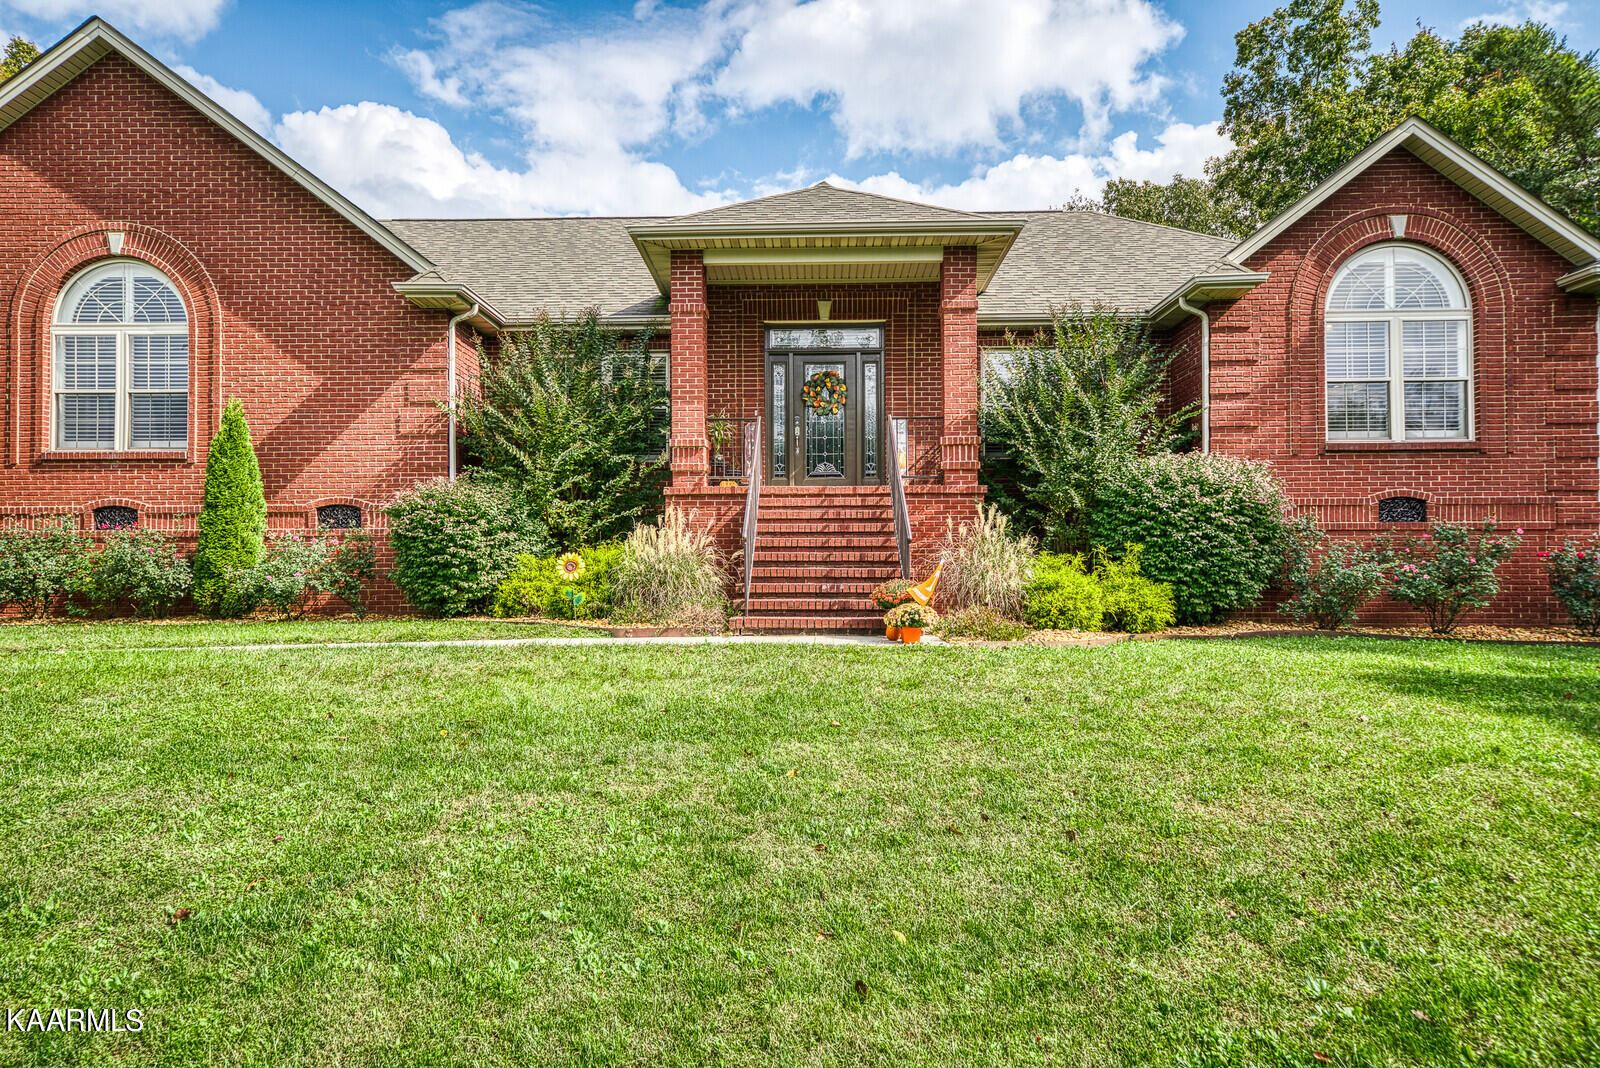 Photo of 1401 Holiday Drive, Crossville, TN 38555 (MLS # 1171438)